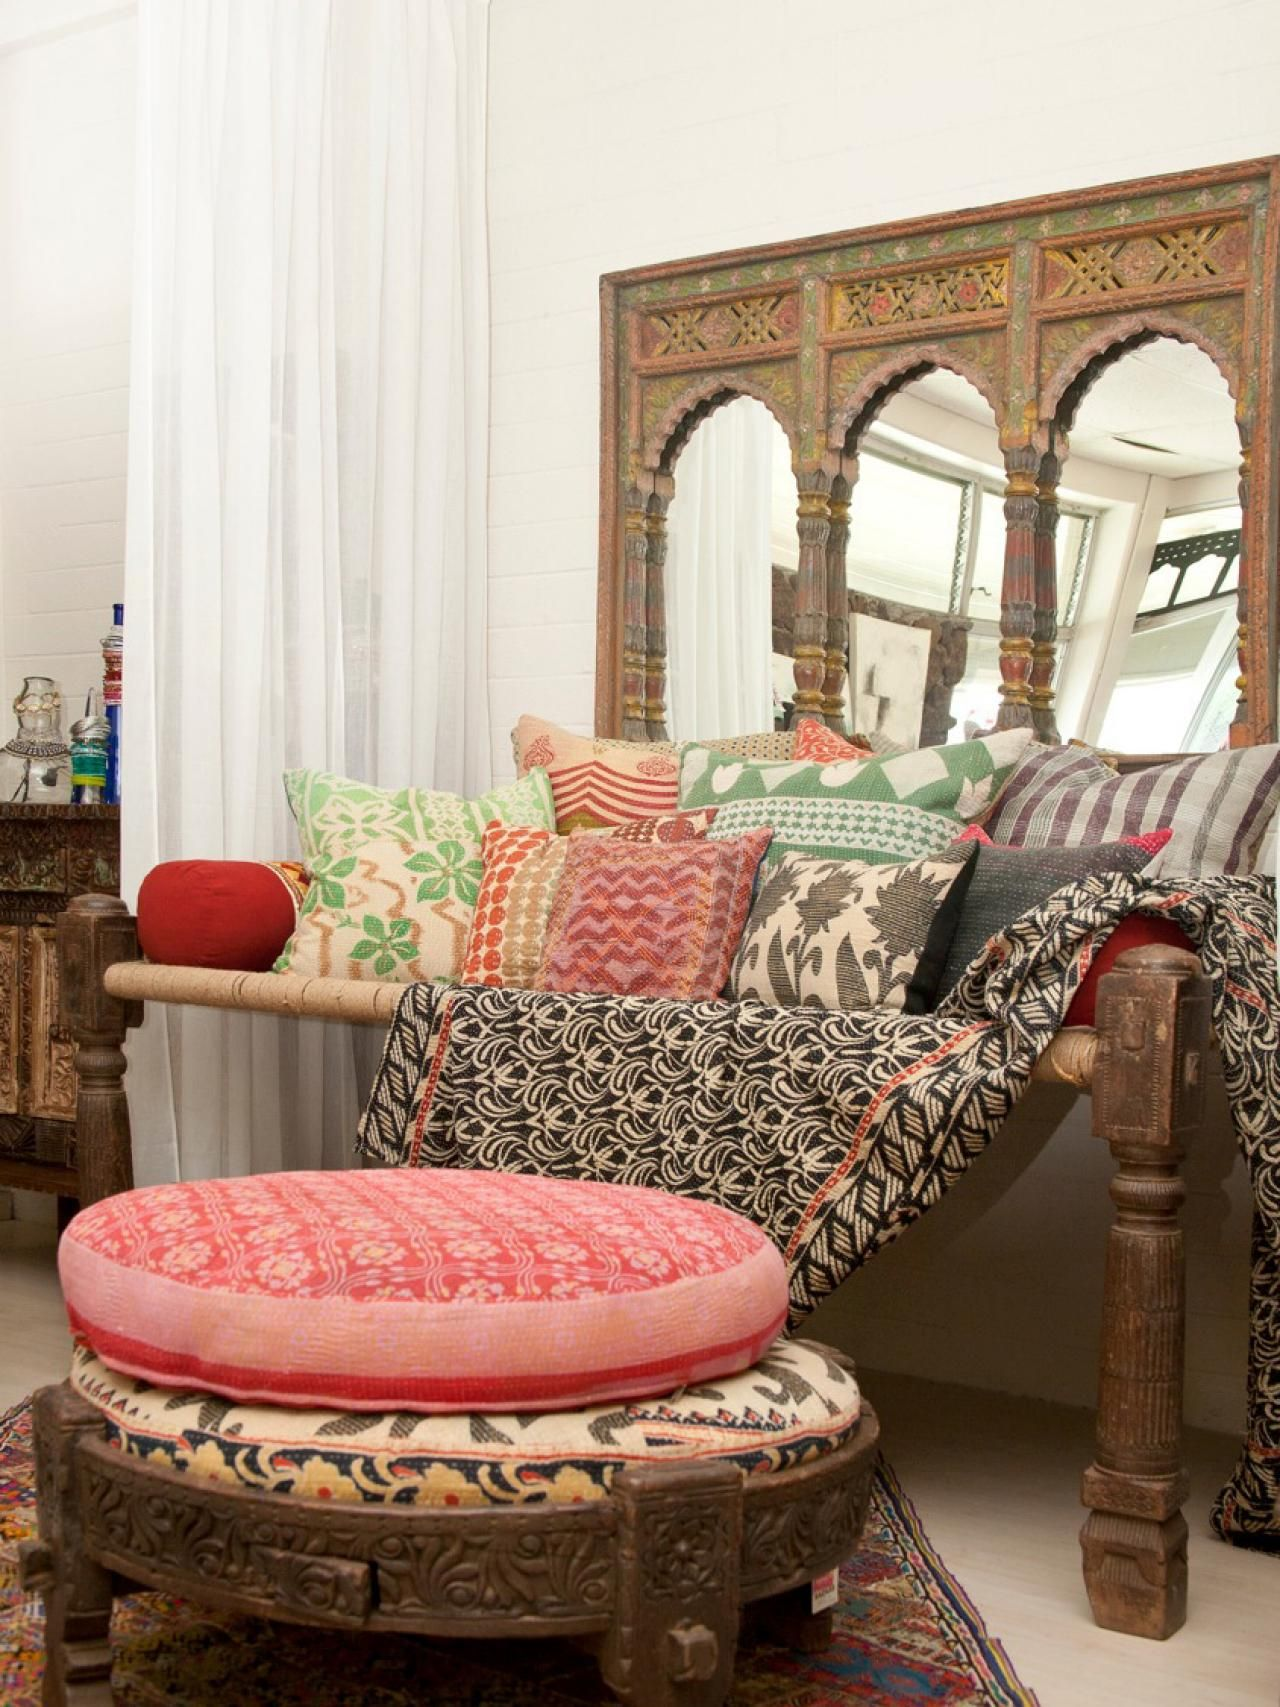 12 Spaces Inspired by India Interior